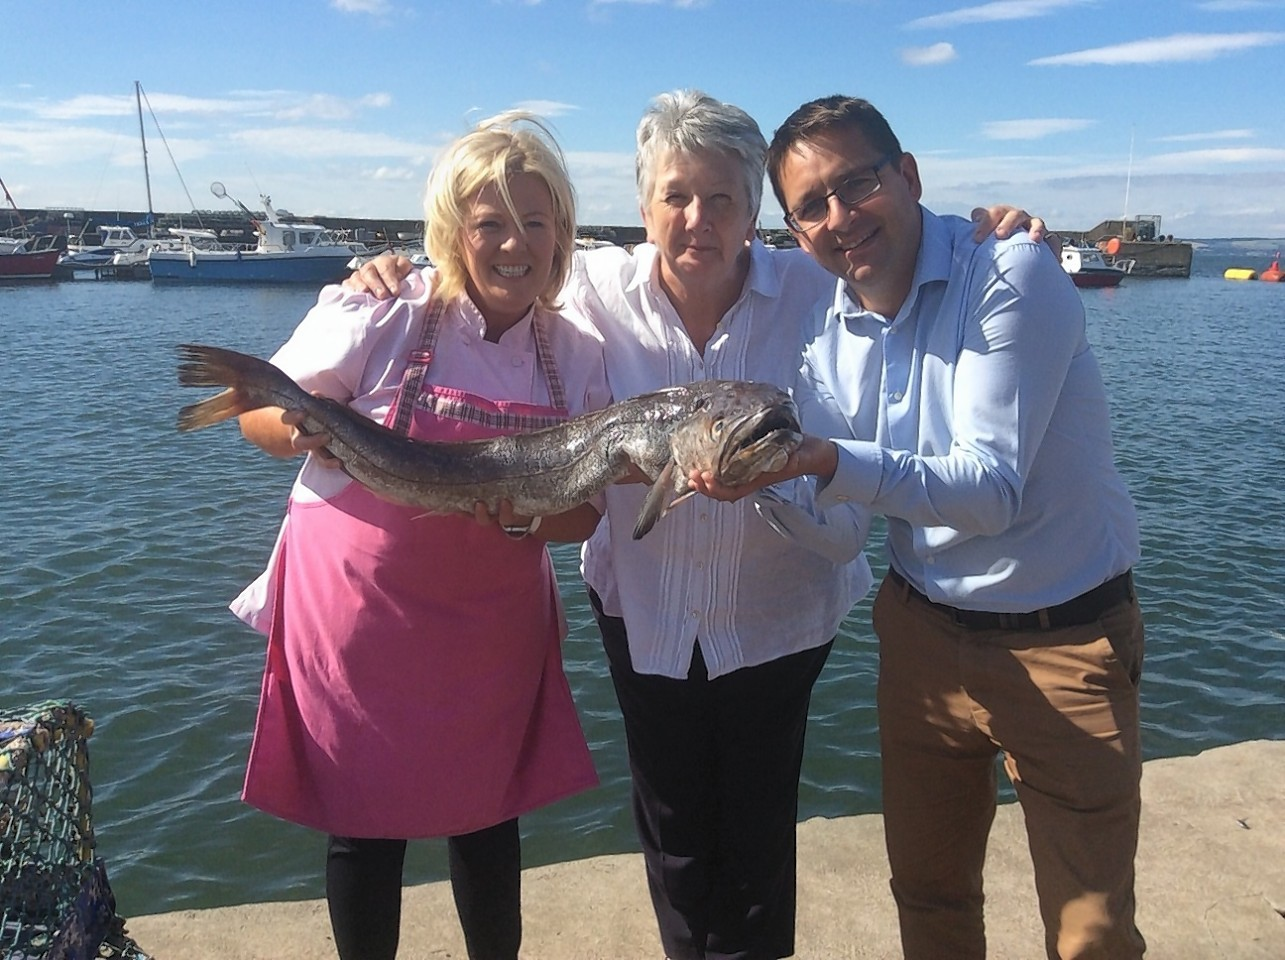 L-R: Jak O'Donnell, Ambassador for Taste the Wild, Shirley Spear, chairwoman of Scottish Food Commission, and James Withers, CEO Scotland Food & Drink